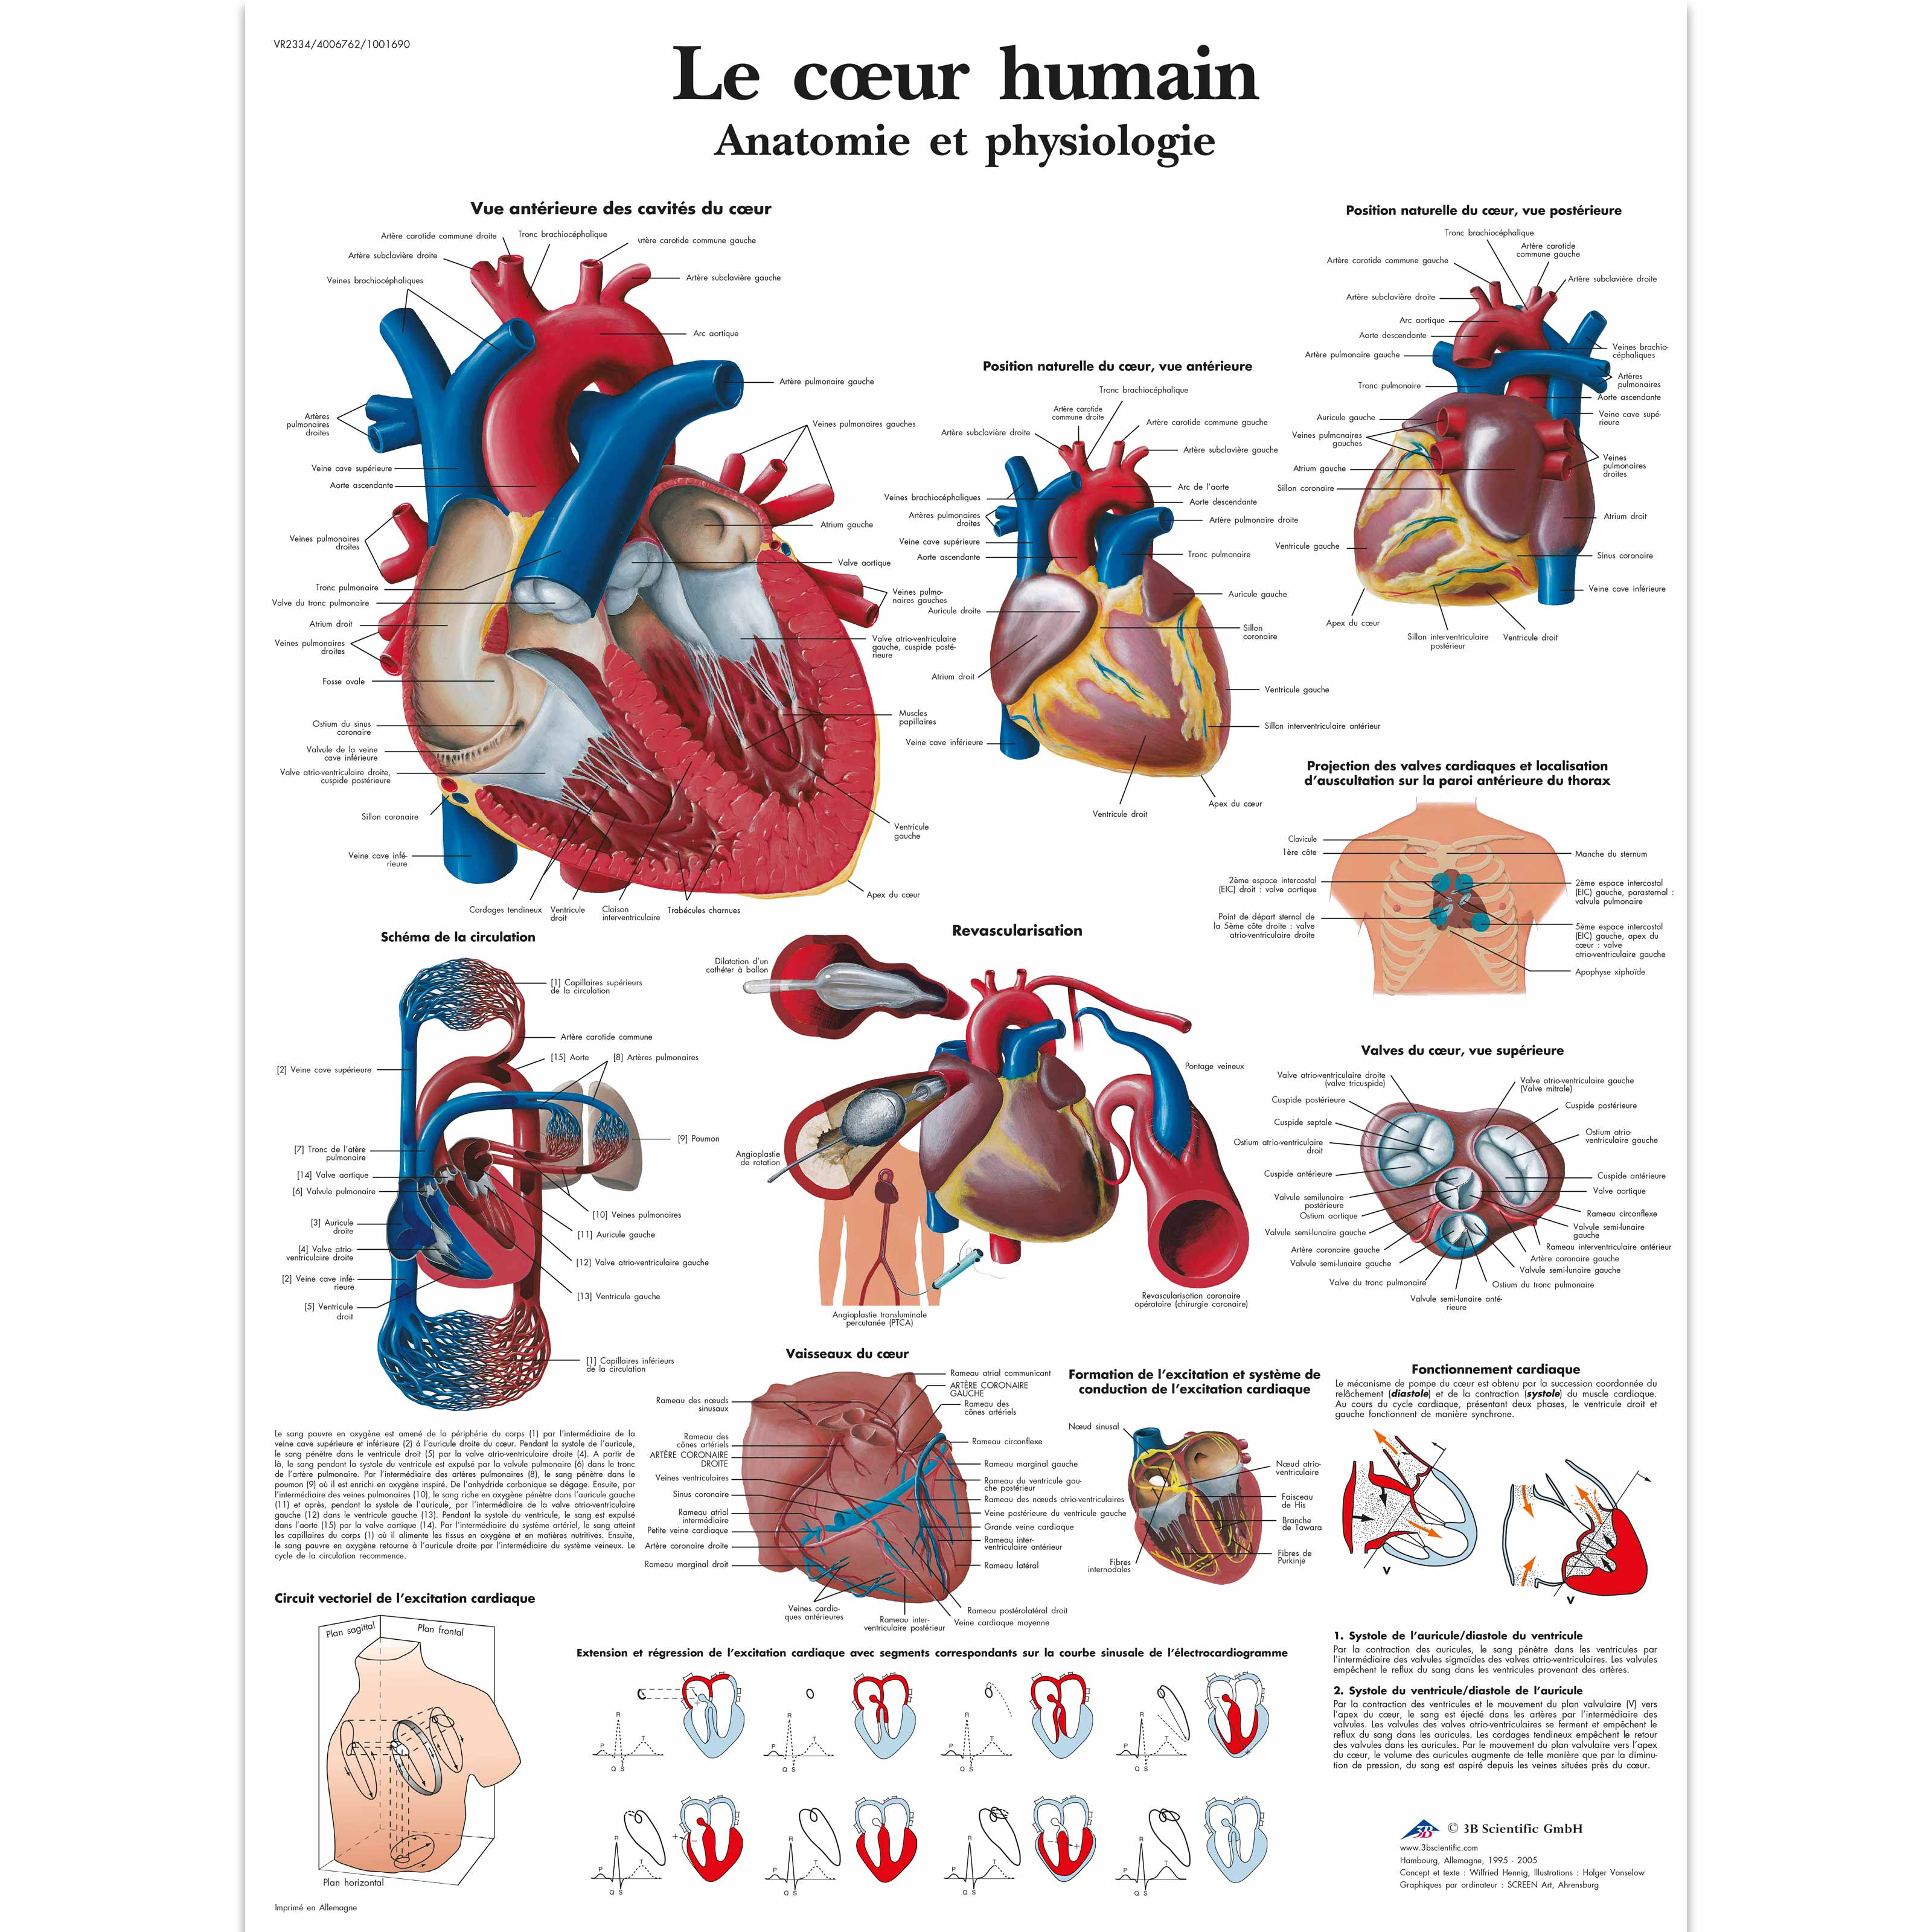 Human Lung Anatomy Bronchi Lungs furthermore APIINotes5 20Circulatory 20Anatomy besides Ear together with Muscular System likewise Slide0234. on human circulatory system lab